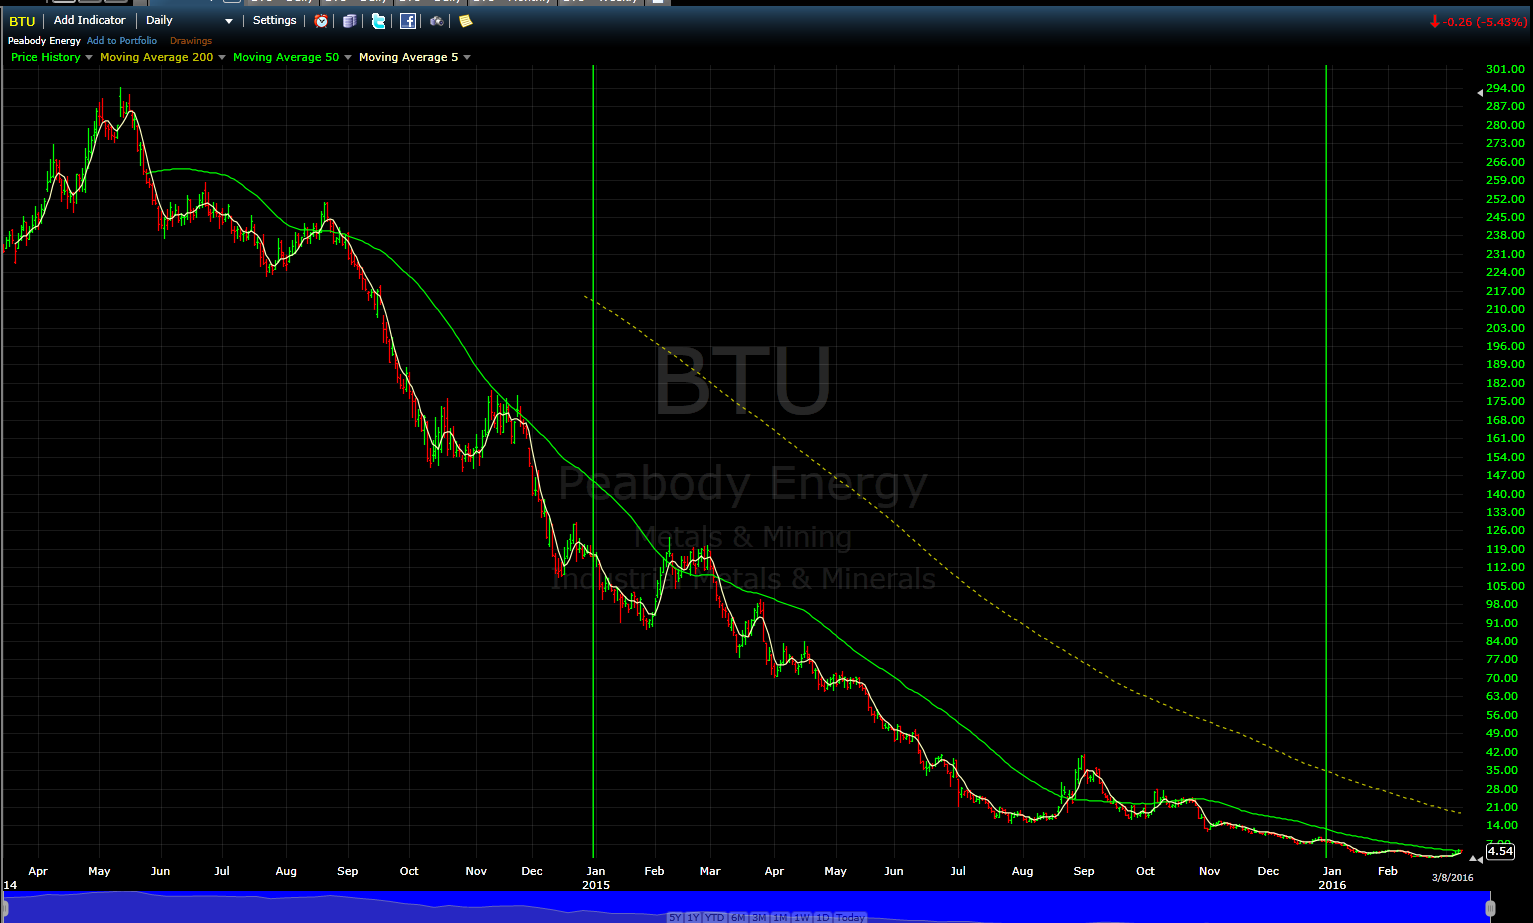 Merrill over matter look at some of the stock symbols for coal companies and youll see declines even more severe heres btu peabody energy low natural gas biocorpaavc